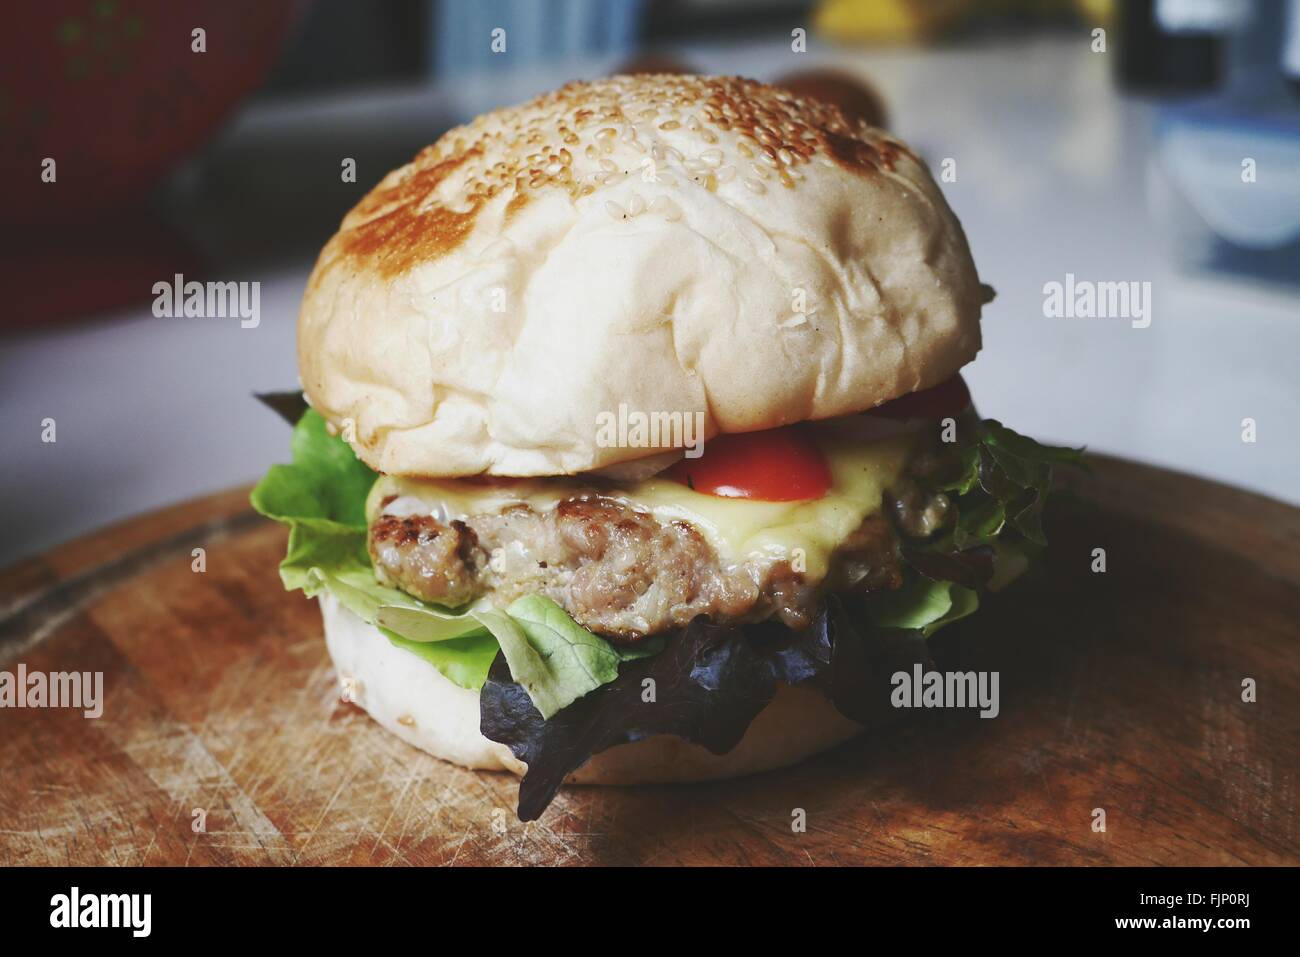 Portrait Of Burger sur tableau Photo Stock